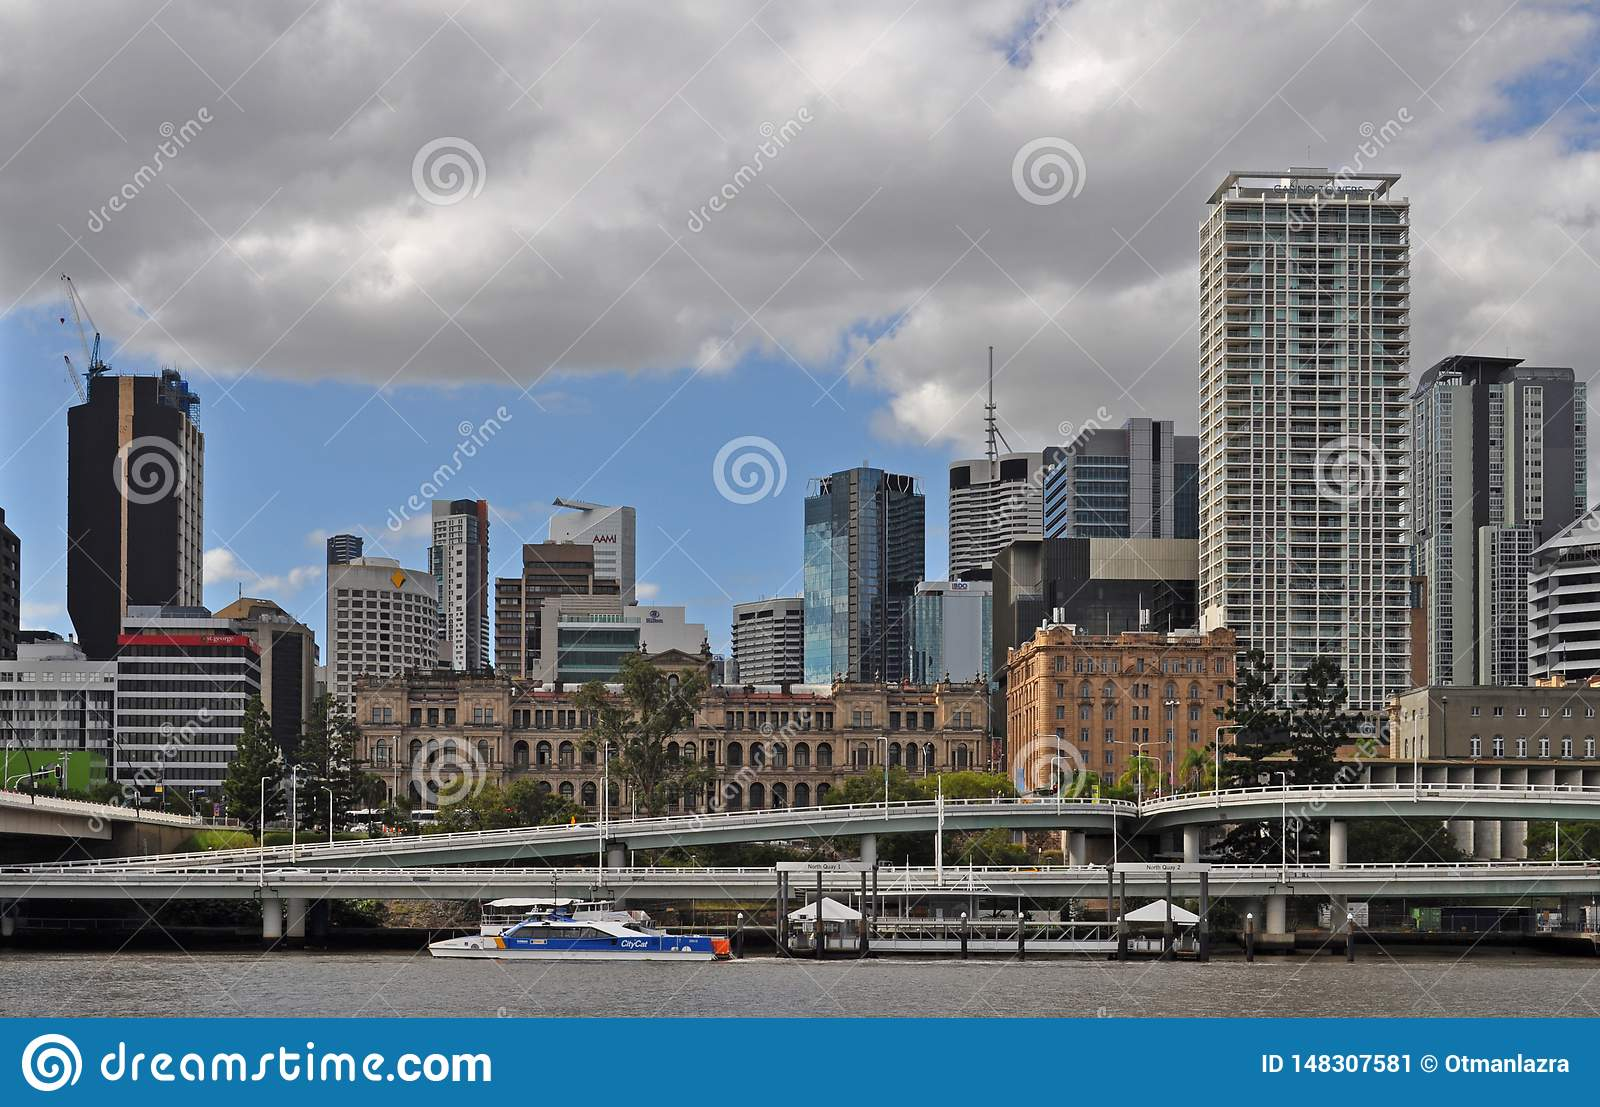 View of the modern skyline of downtown Brisbane